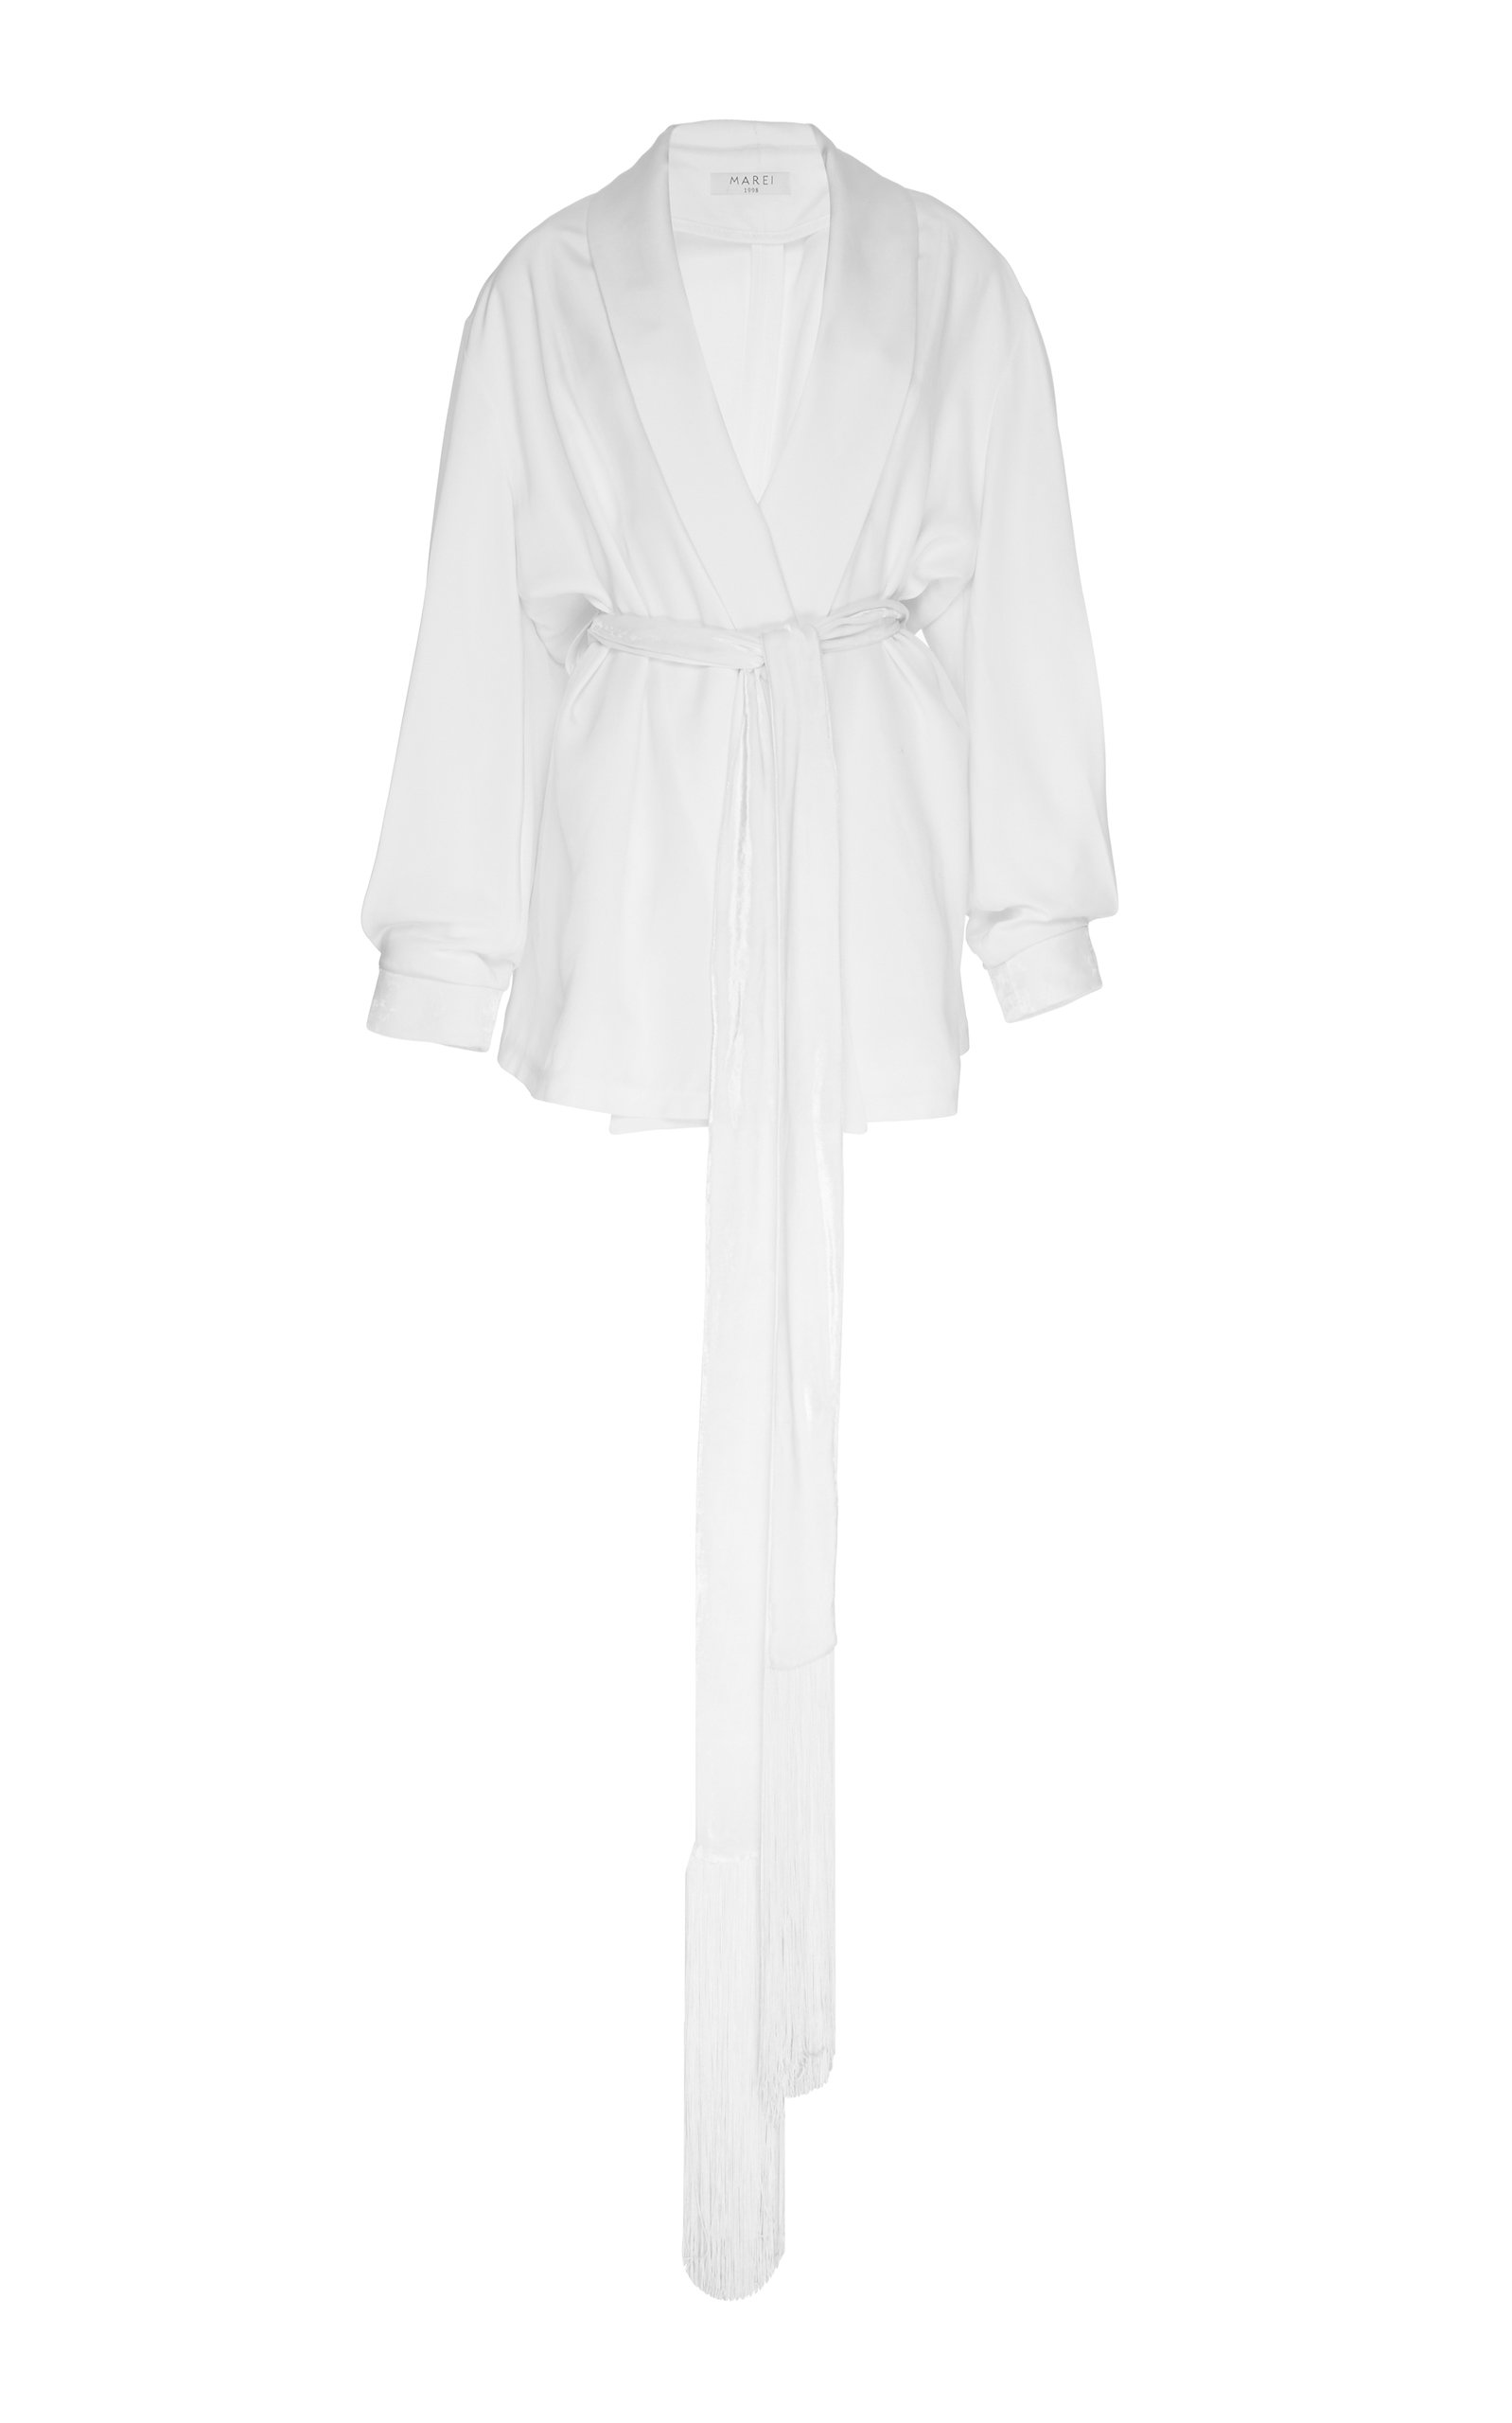 MAREI 1998 Nolana Silk Cardigan in White